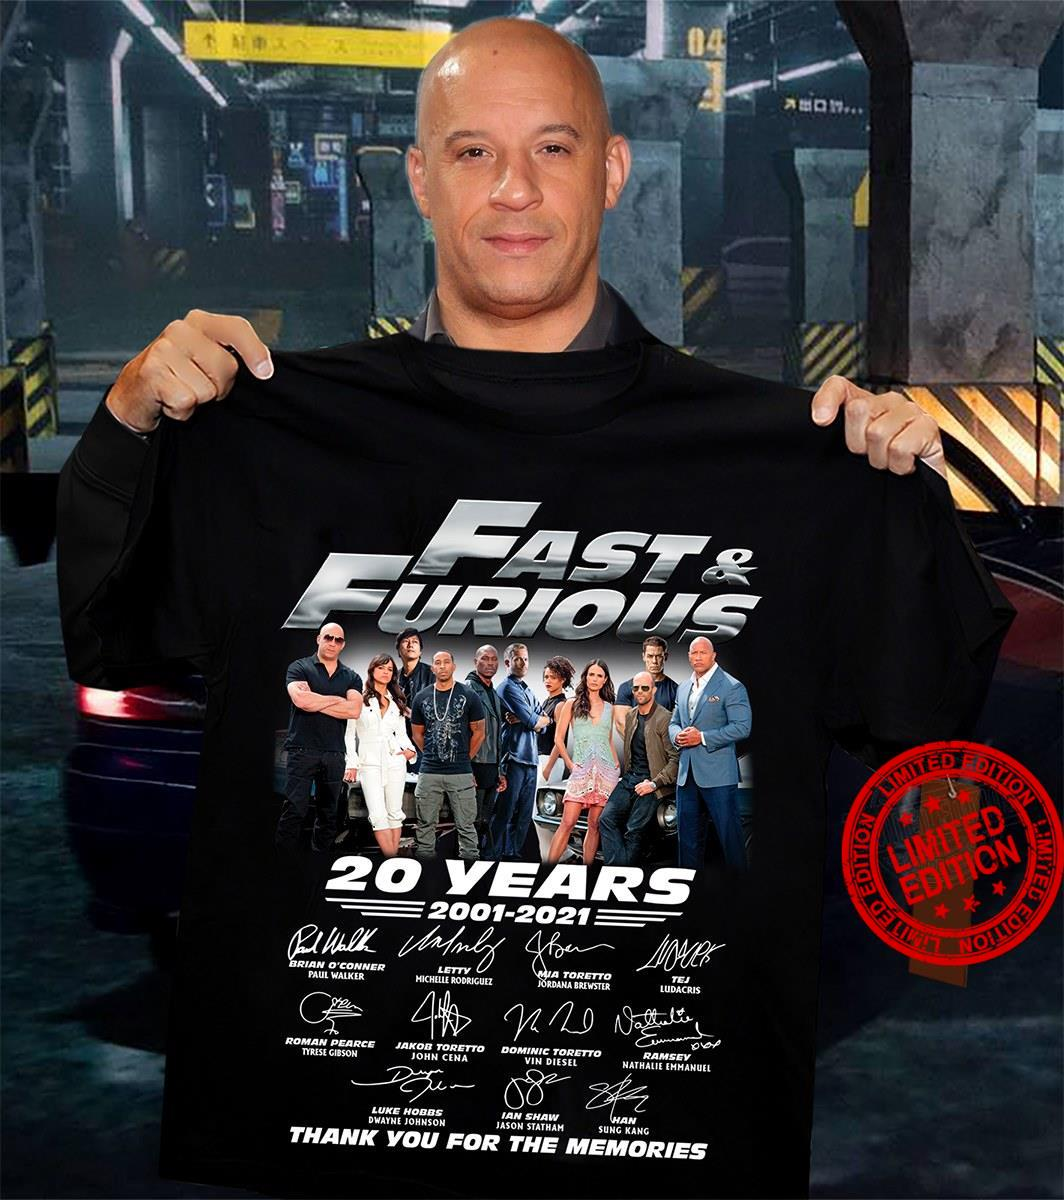 Fast & Furious 20 Years 2001-2021 Thank You For The Memories Shirt